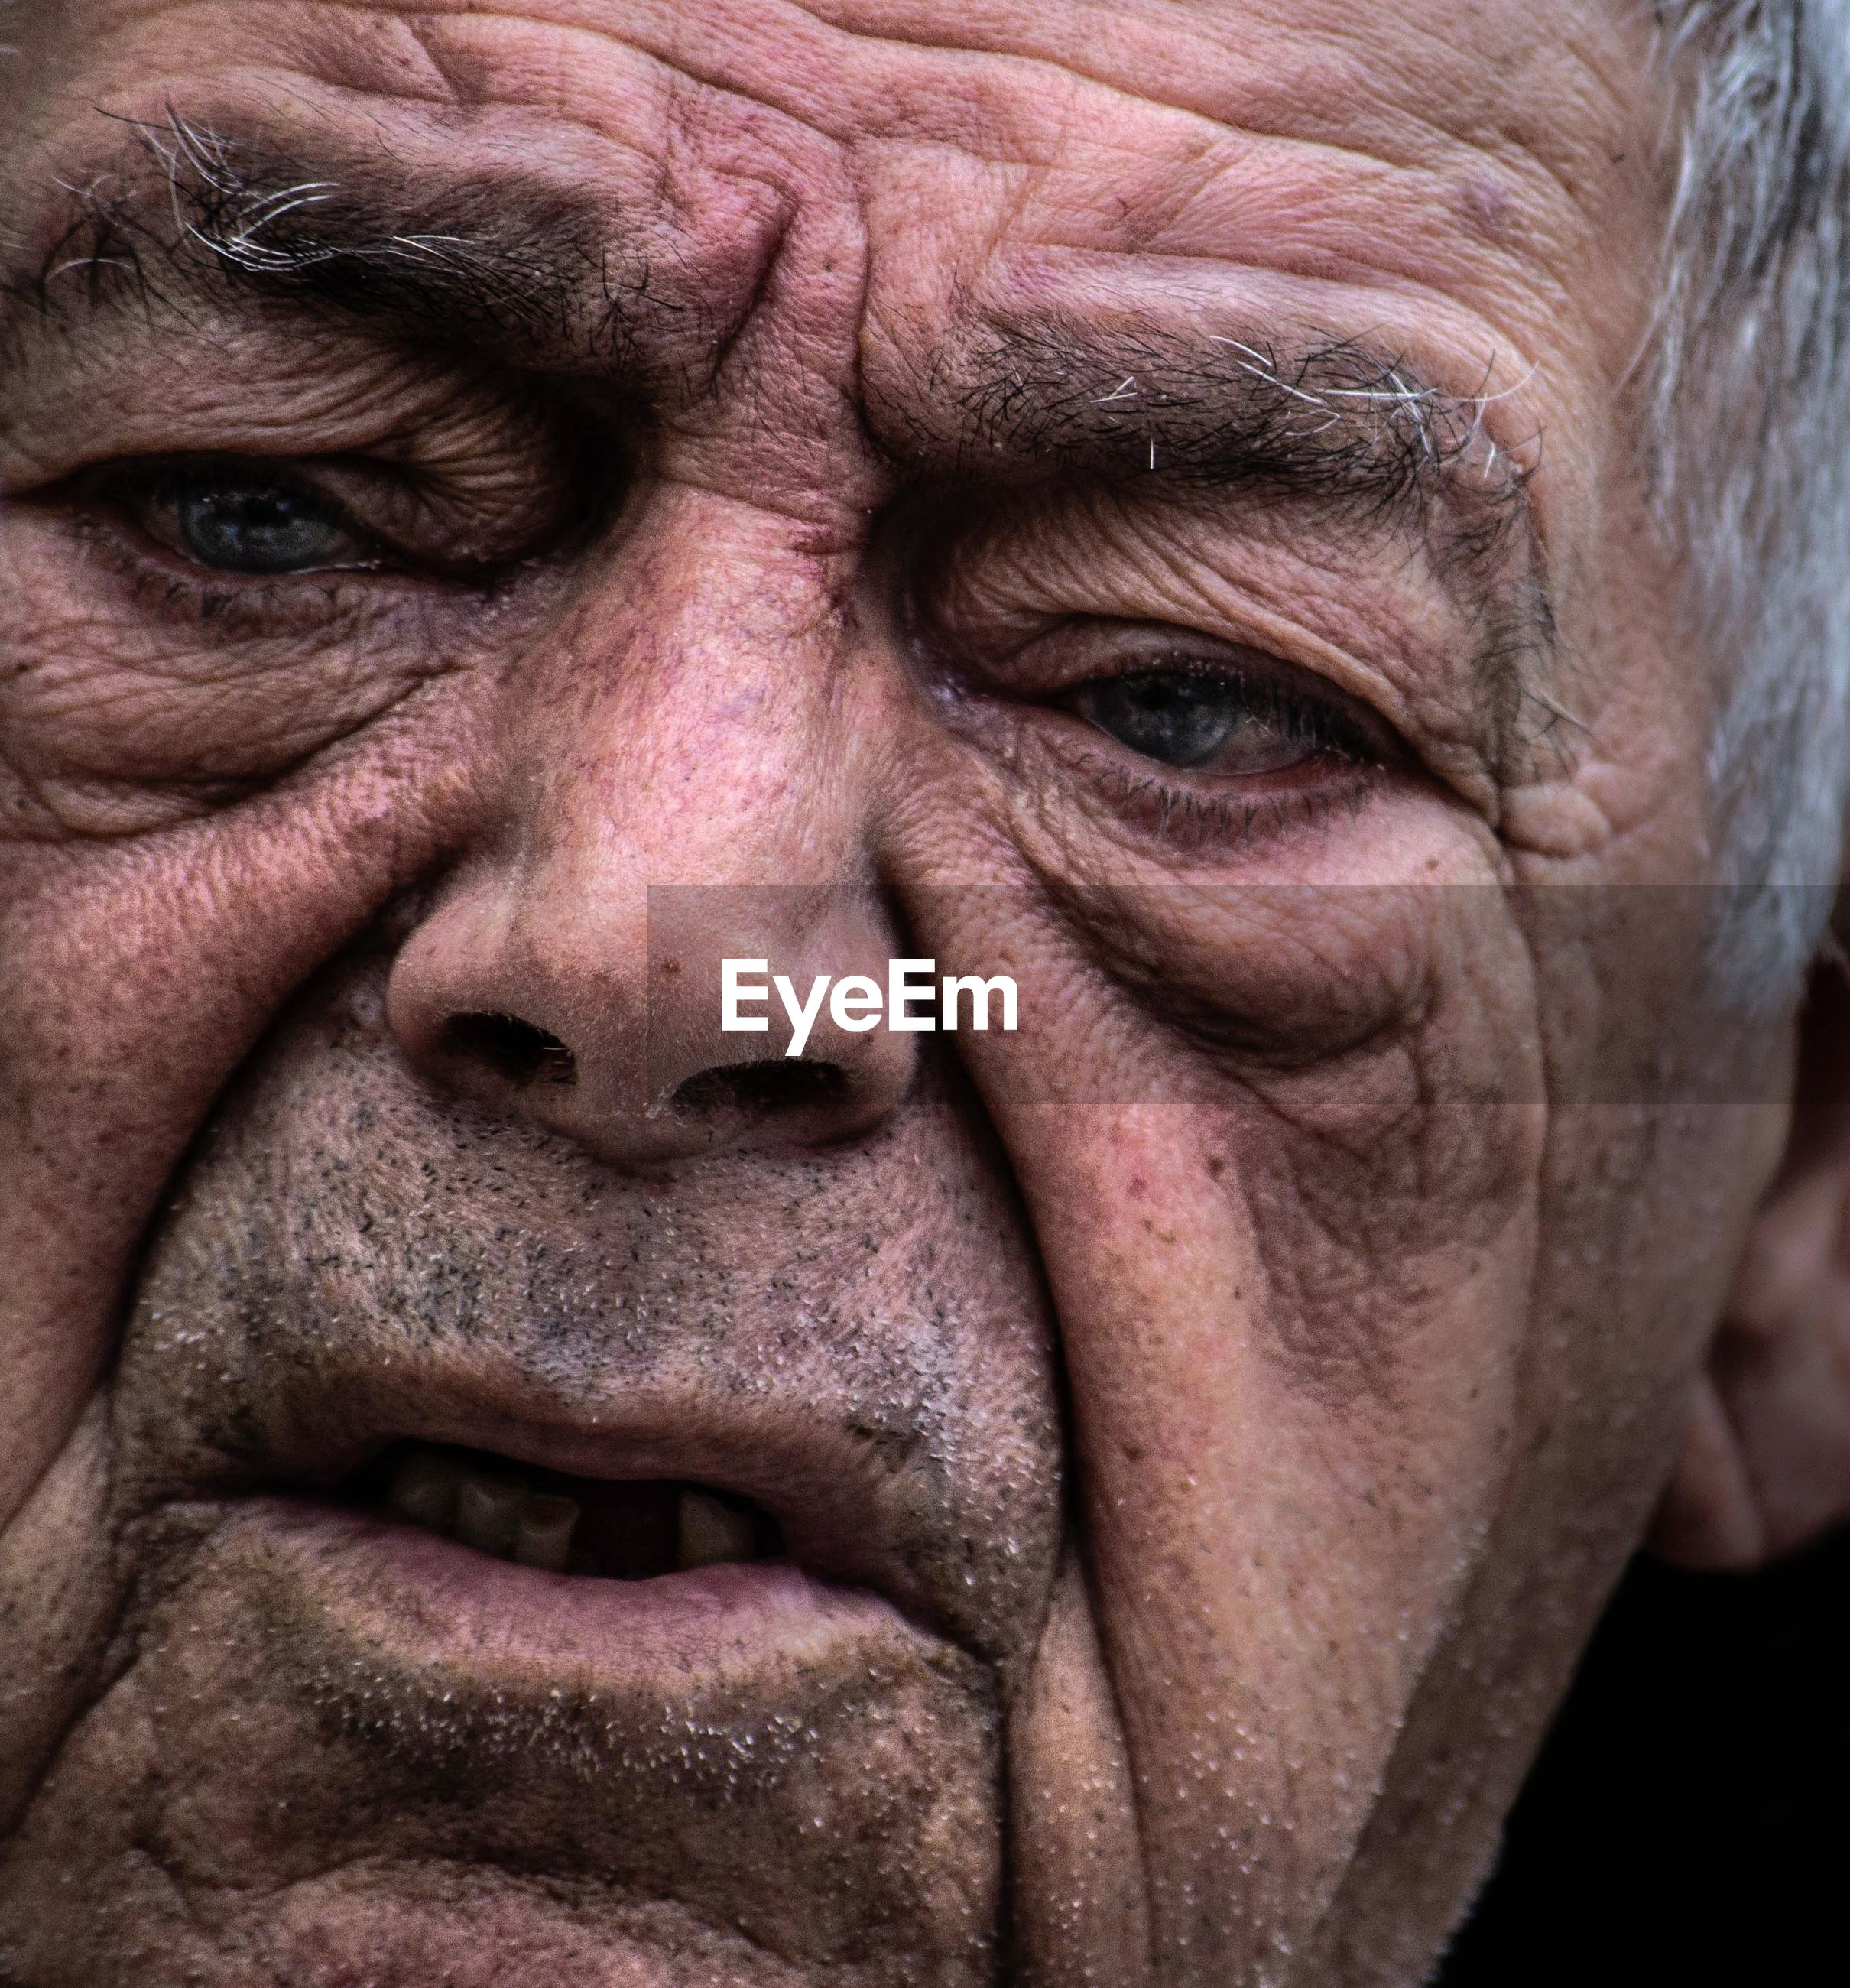 close-up, adult, portrait, emotion, one person, human body part, body part, human face, wrinkled, men, front view, sadness, mature adult, beard, looking at camera, senior adult, real people, facial hair, mature men, contemplation, depression - sadness, social issues